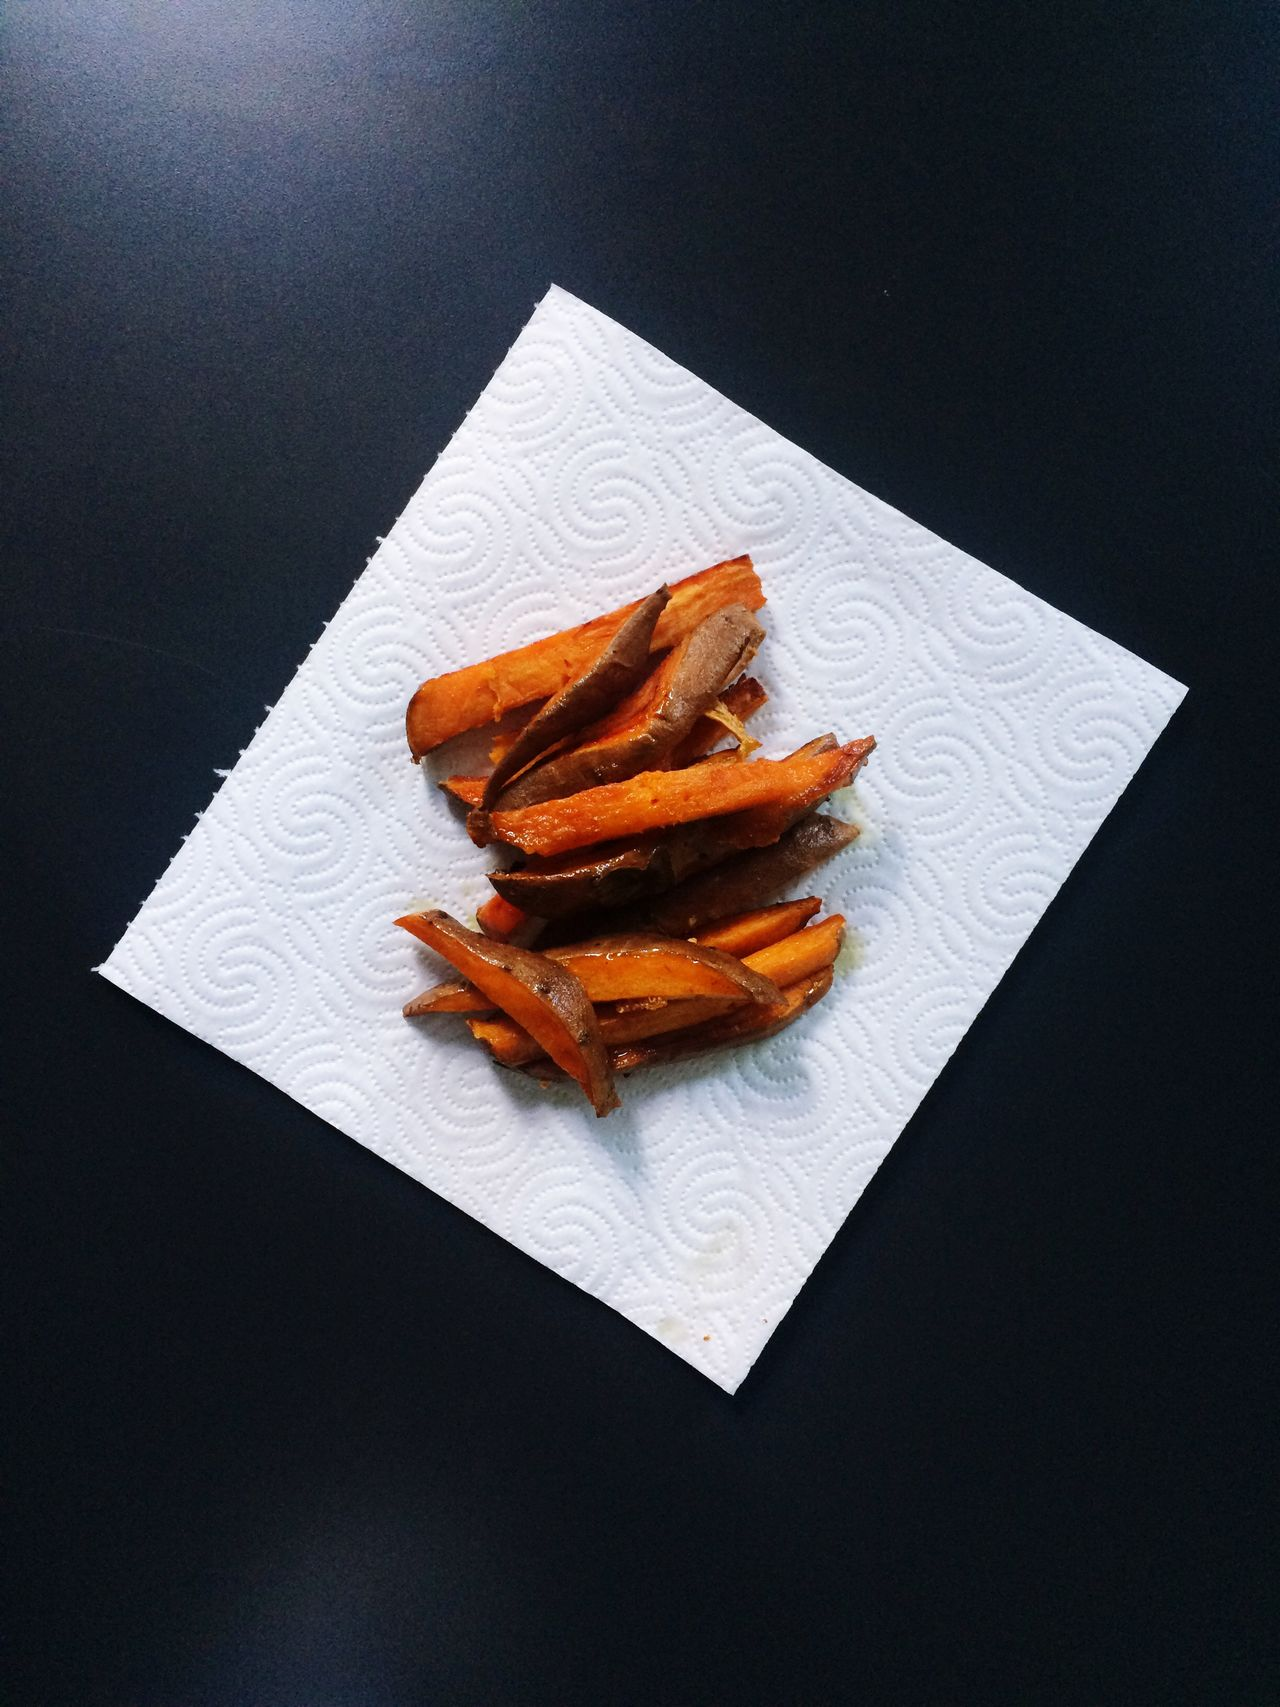 Sweet Potato Fries Still Life No People Food Food And Drink Plate High Angle View Indoors  Freshness Ready-to-eat Unhealthy Eating Chicken Wing Close-up Day